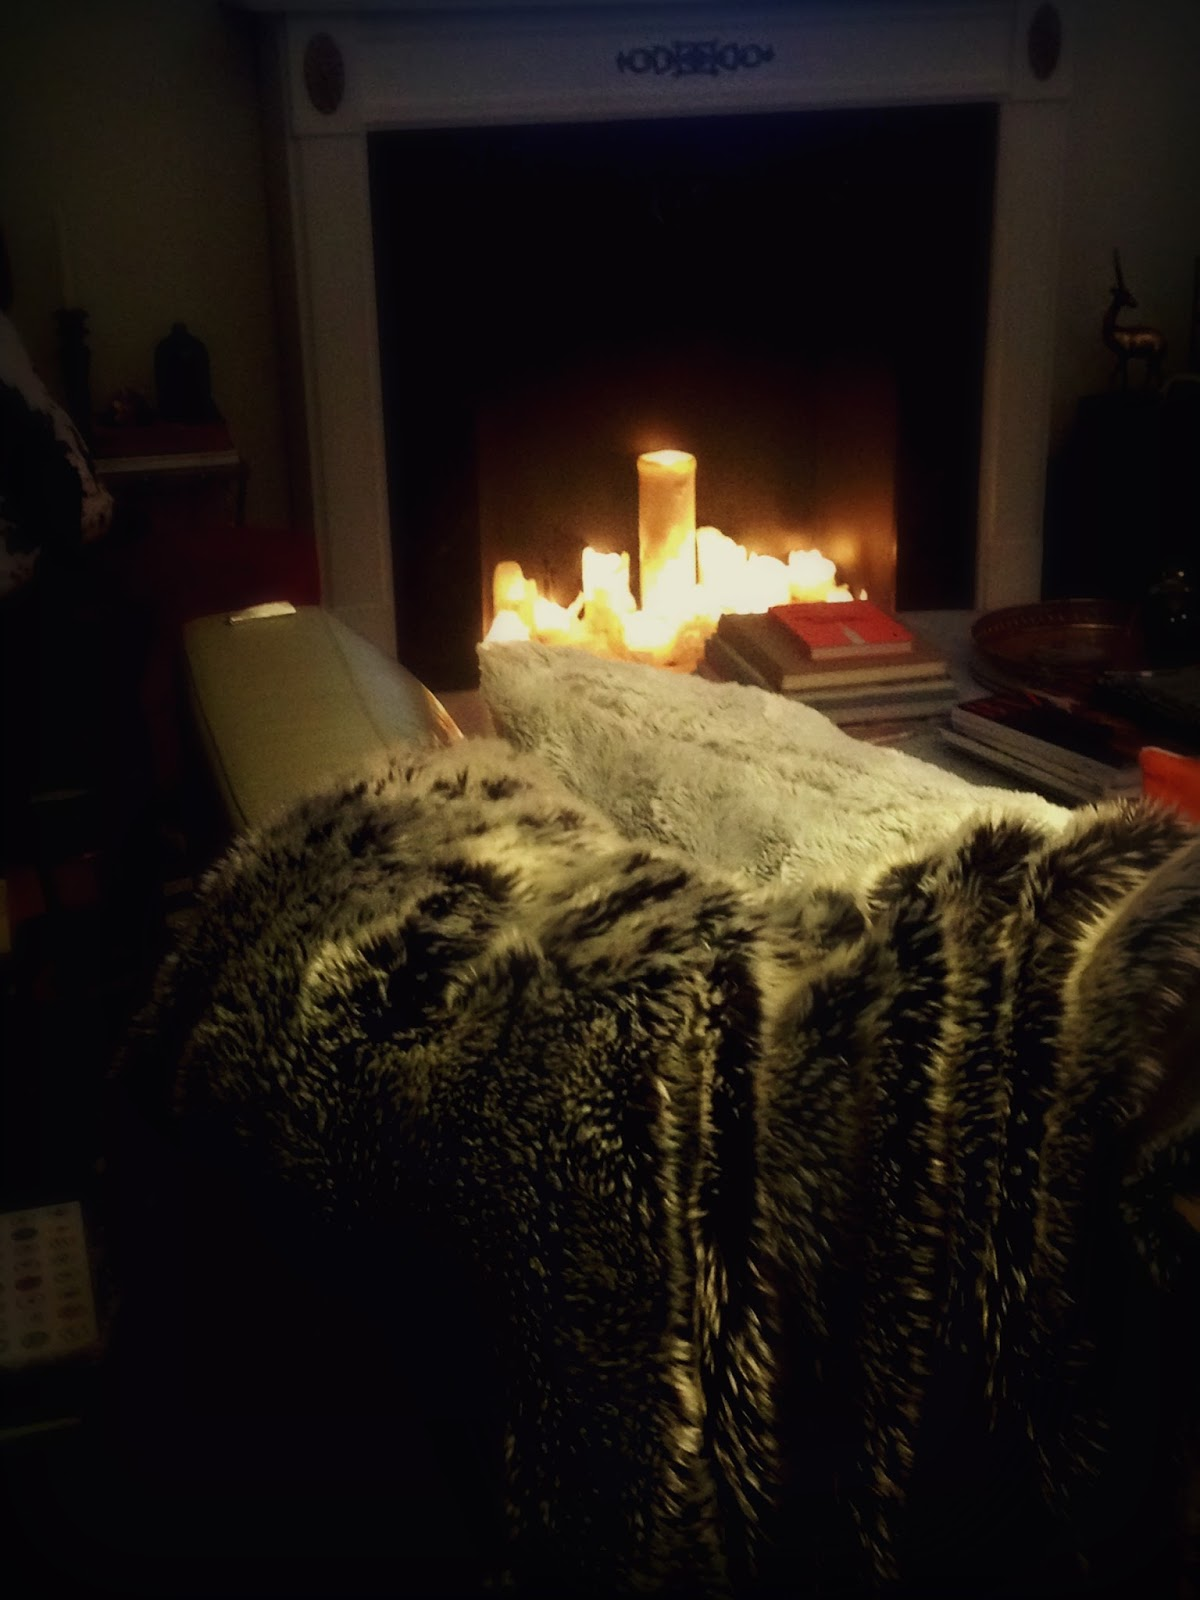 Candlelit Fireplace + Fur Throw and Pillows Rainy Night At Home